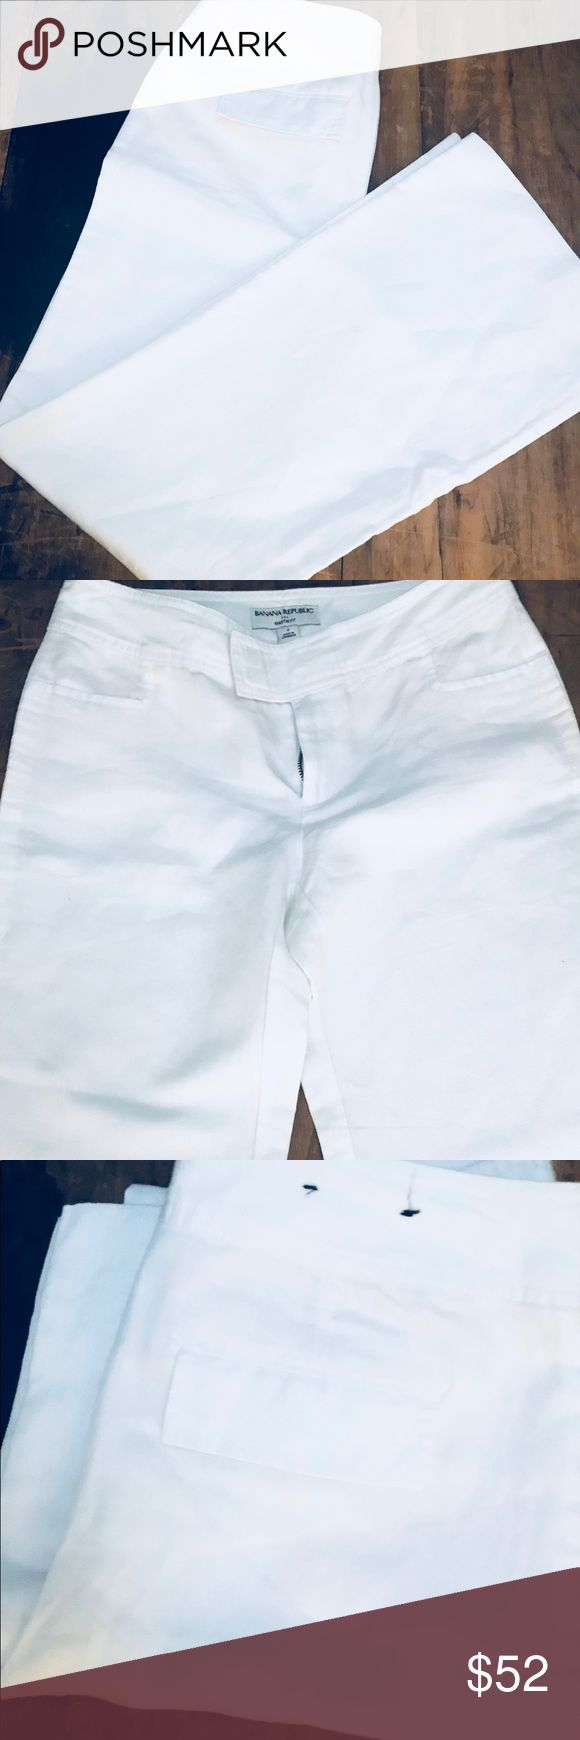 """Banana Republic Martin Fit Pants The perfect summer pants! White, wide leg and super comfy ! They look awesome with some tan sandals a sun hat and loose tank top! Inseam 31"""" size 4 NWOT Banana Republic Pants Wide Leg"""